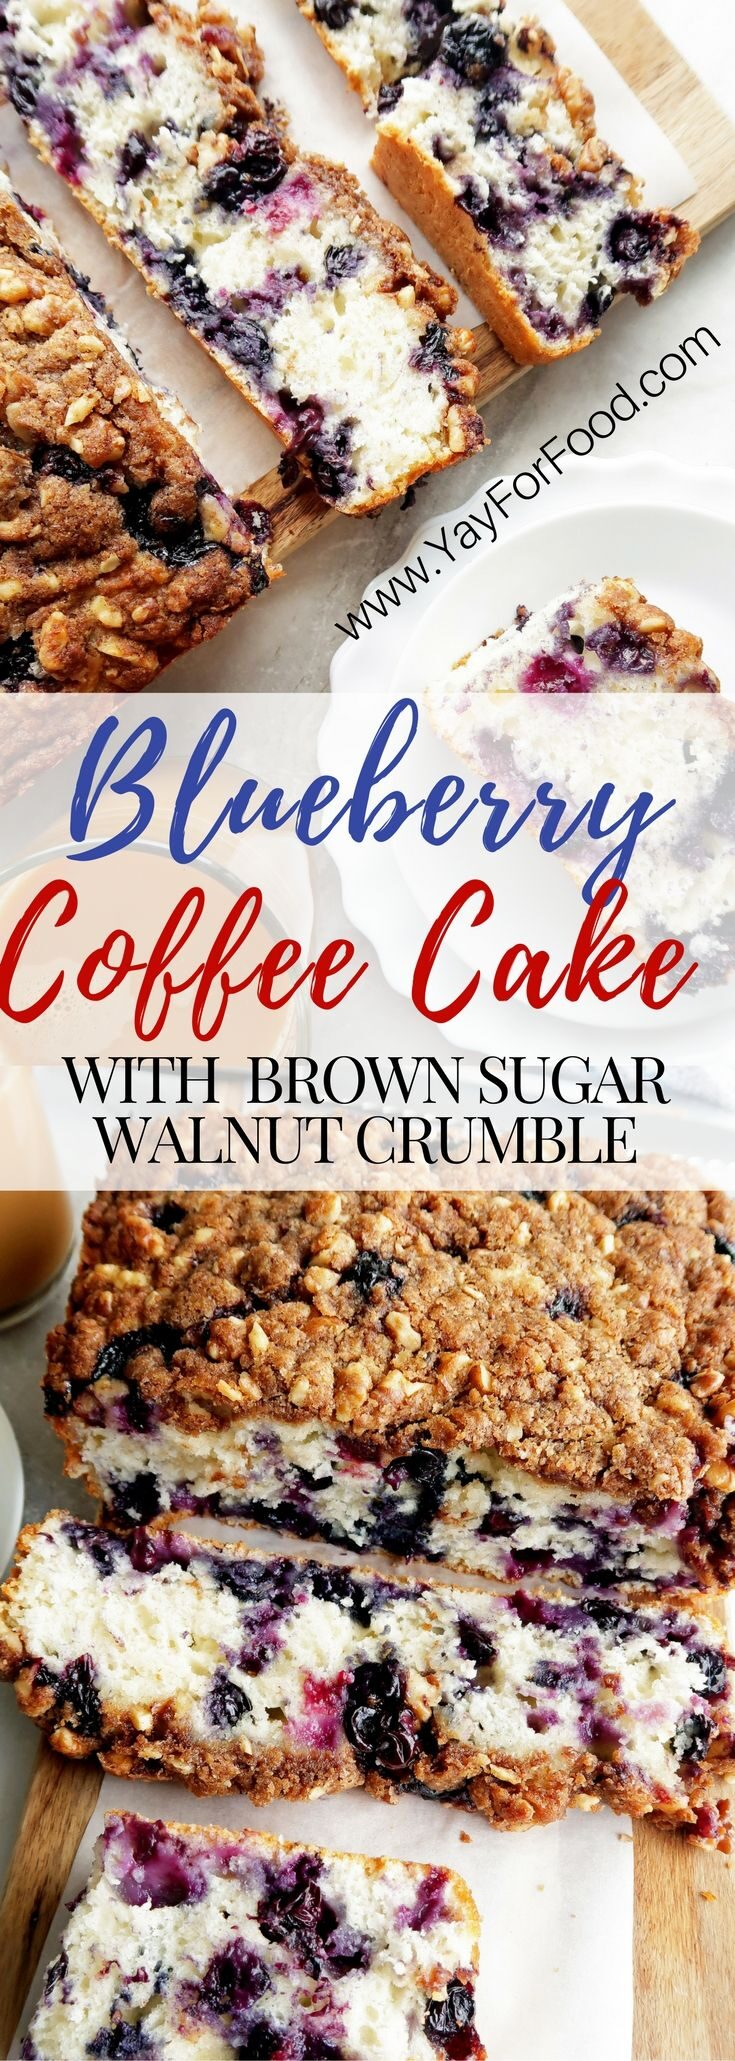 Try this delightful coffee cake loaded with fresh blueberries and topped with a crunchy and sweet walnut and brown sugar crumb topping! Serve it for breakfast, dessert, or as a snack!